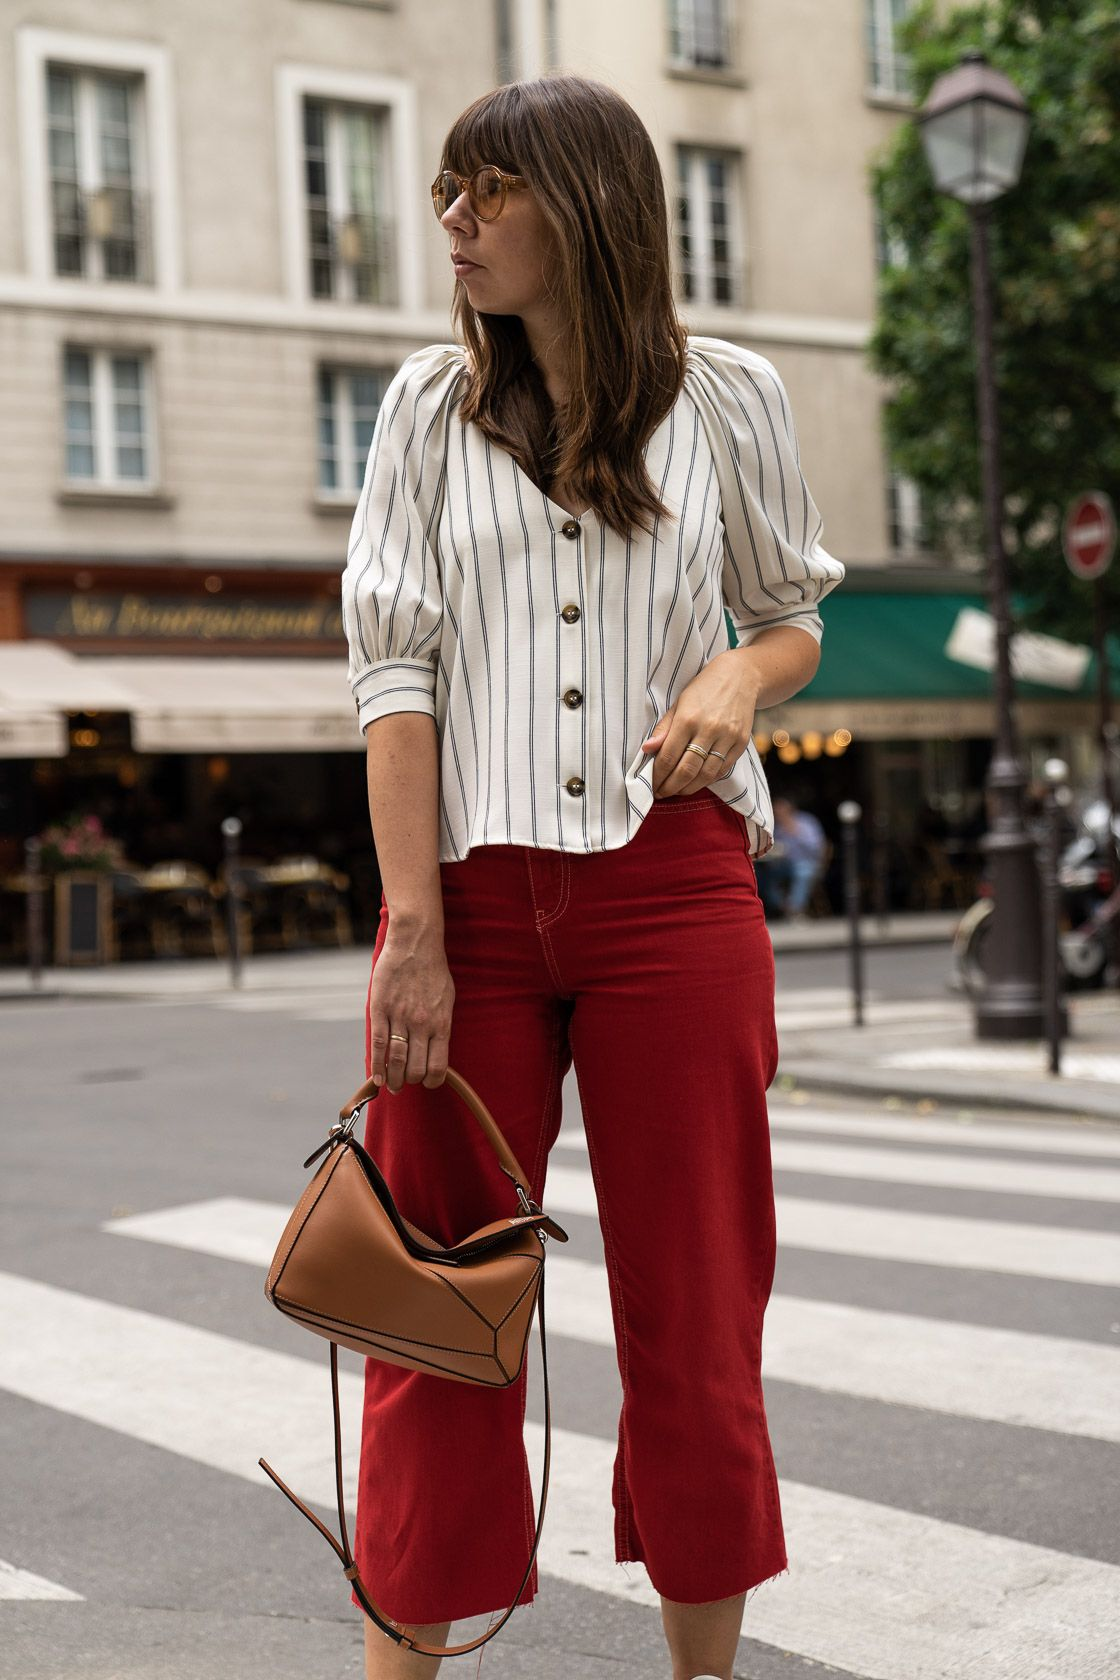 Rote Hose Kombinieren Trendfarbe Rot So Stylt Man